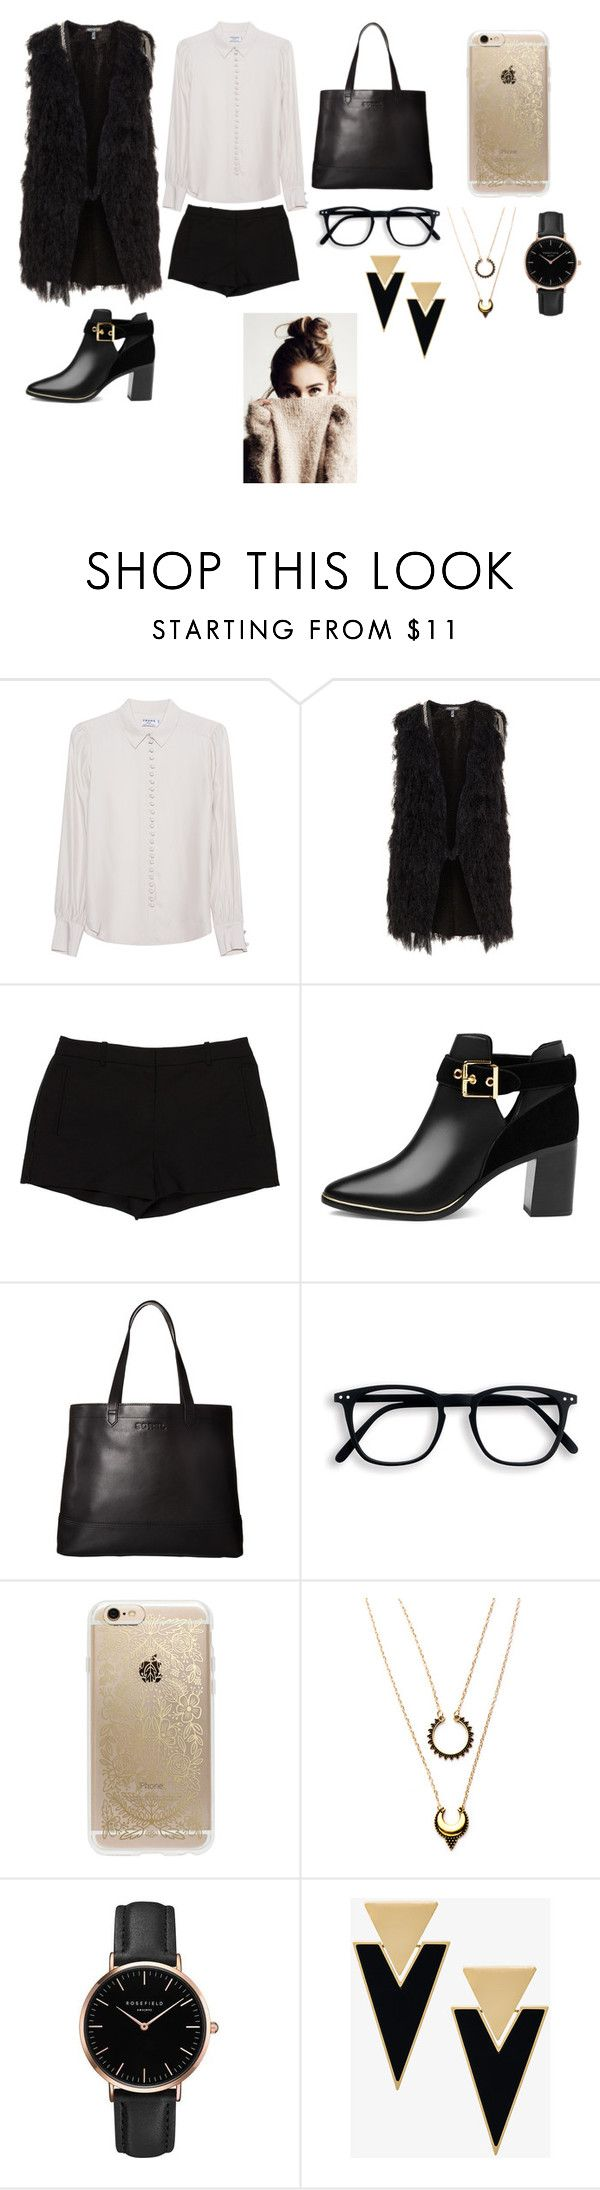 """школа"" by reduska on Polyvore featuring мода, Frame Denim, L'Agence, Ted Baker, SOREL, Rifle Paper Co, WithChic, Topshop и Yves Saint Laurent"